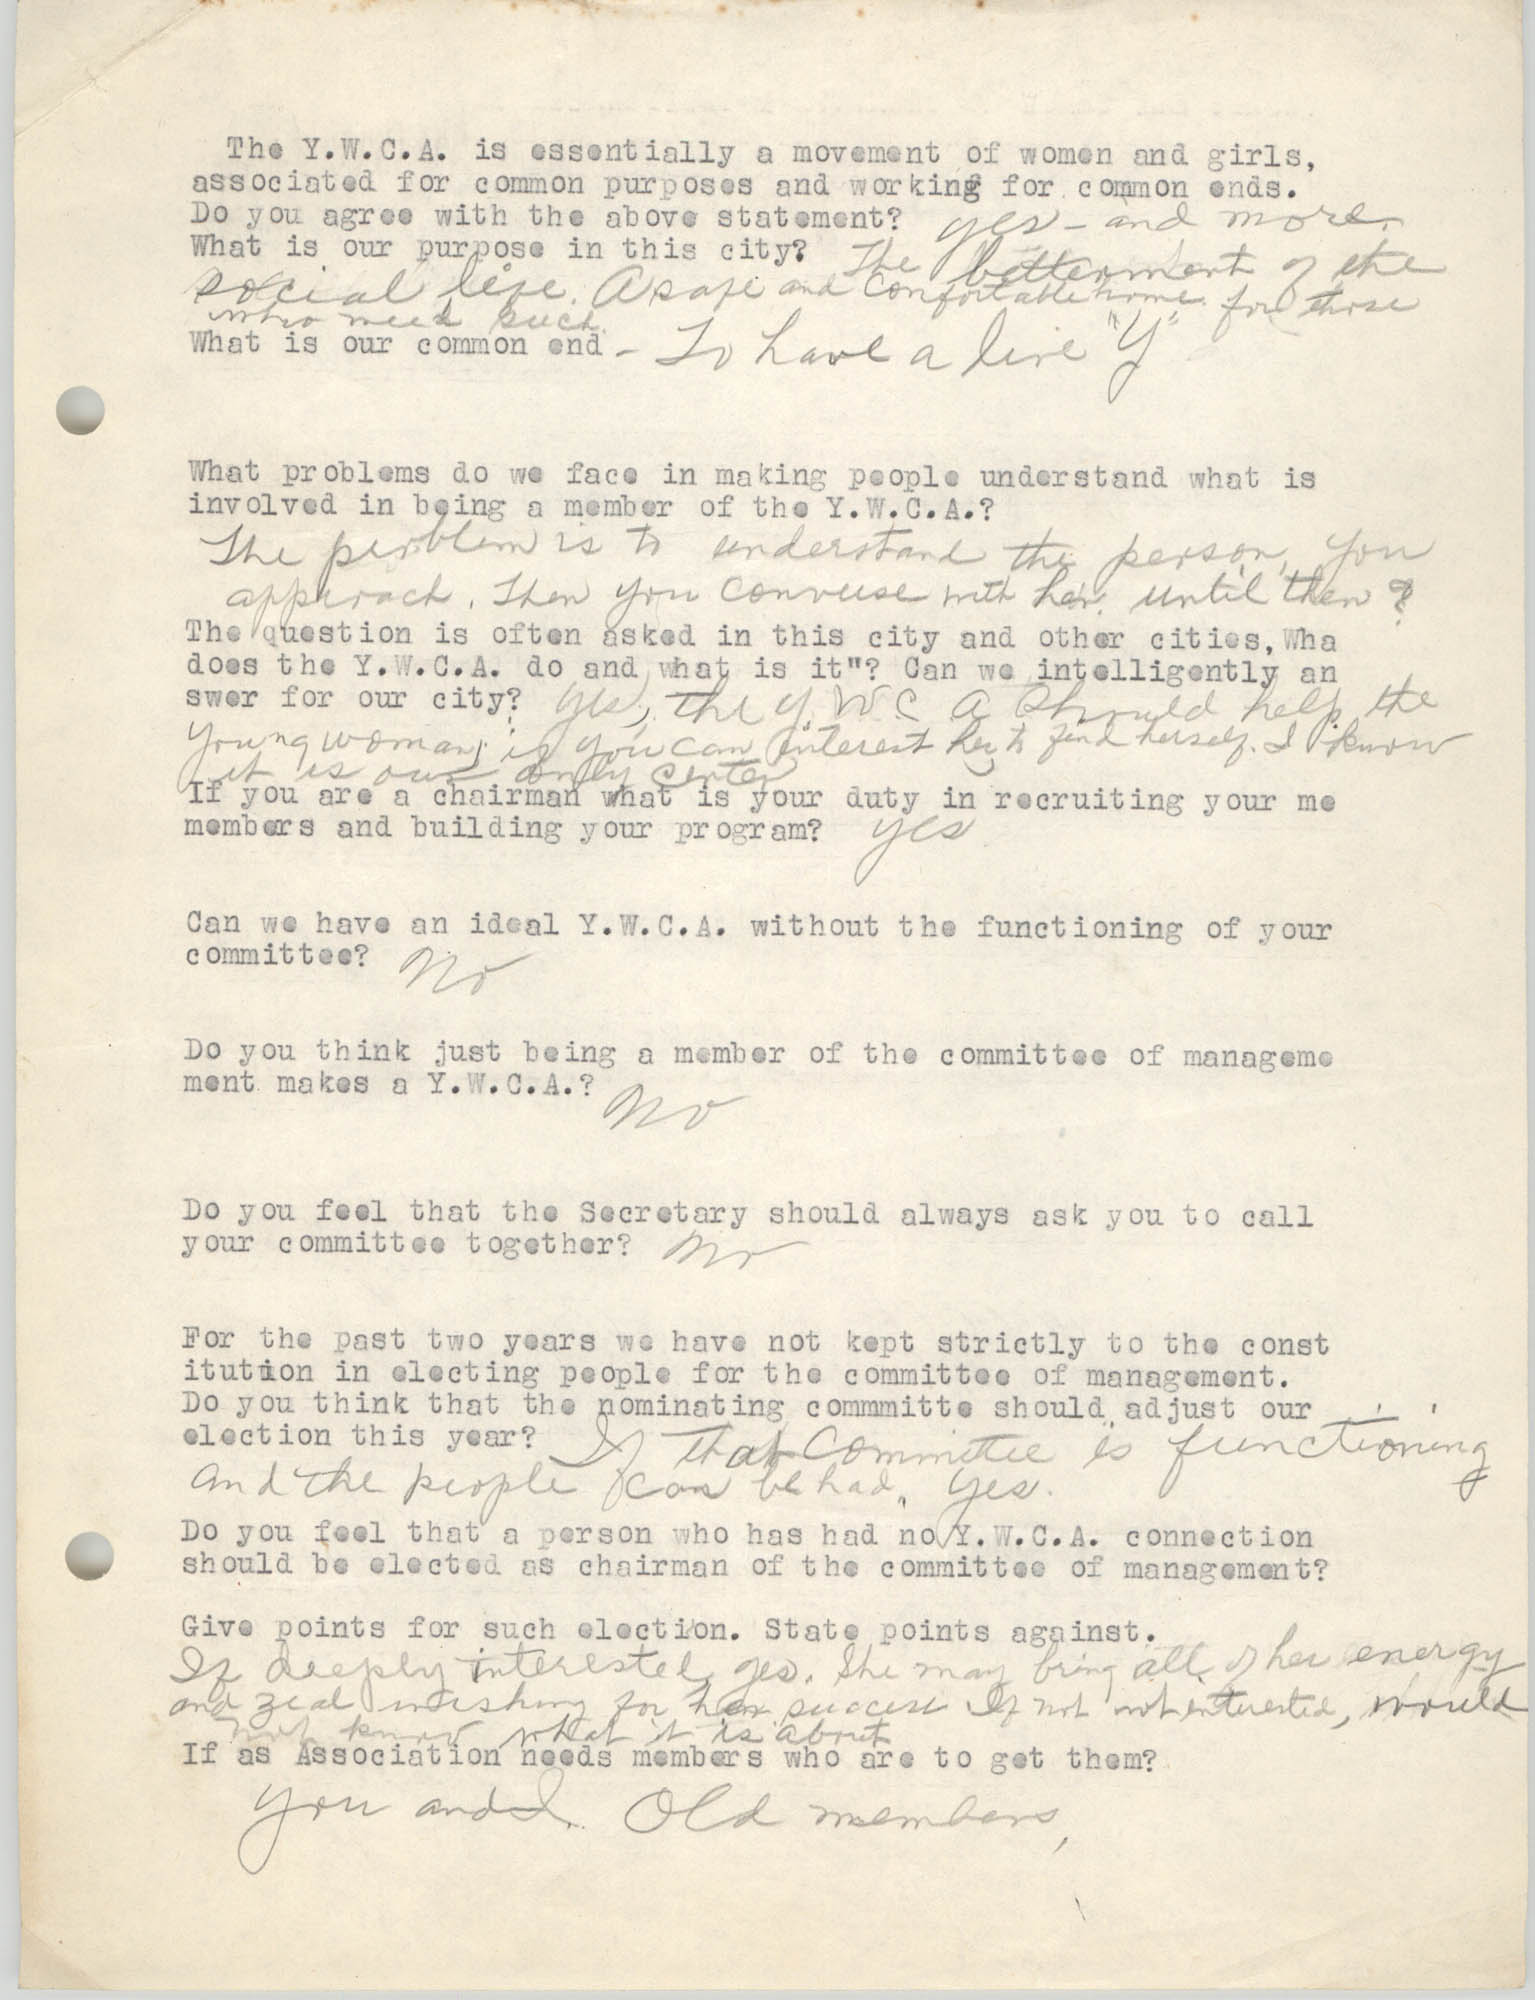 Coming Street Y.W.C.A., Completed Questionnaire Number 1, Page 1